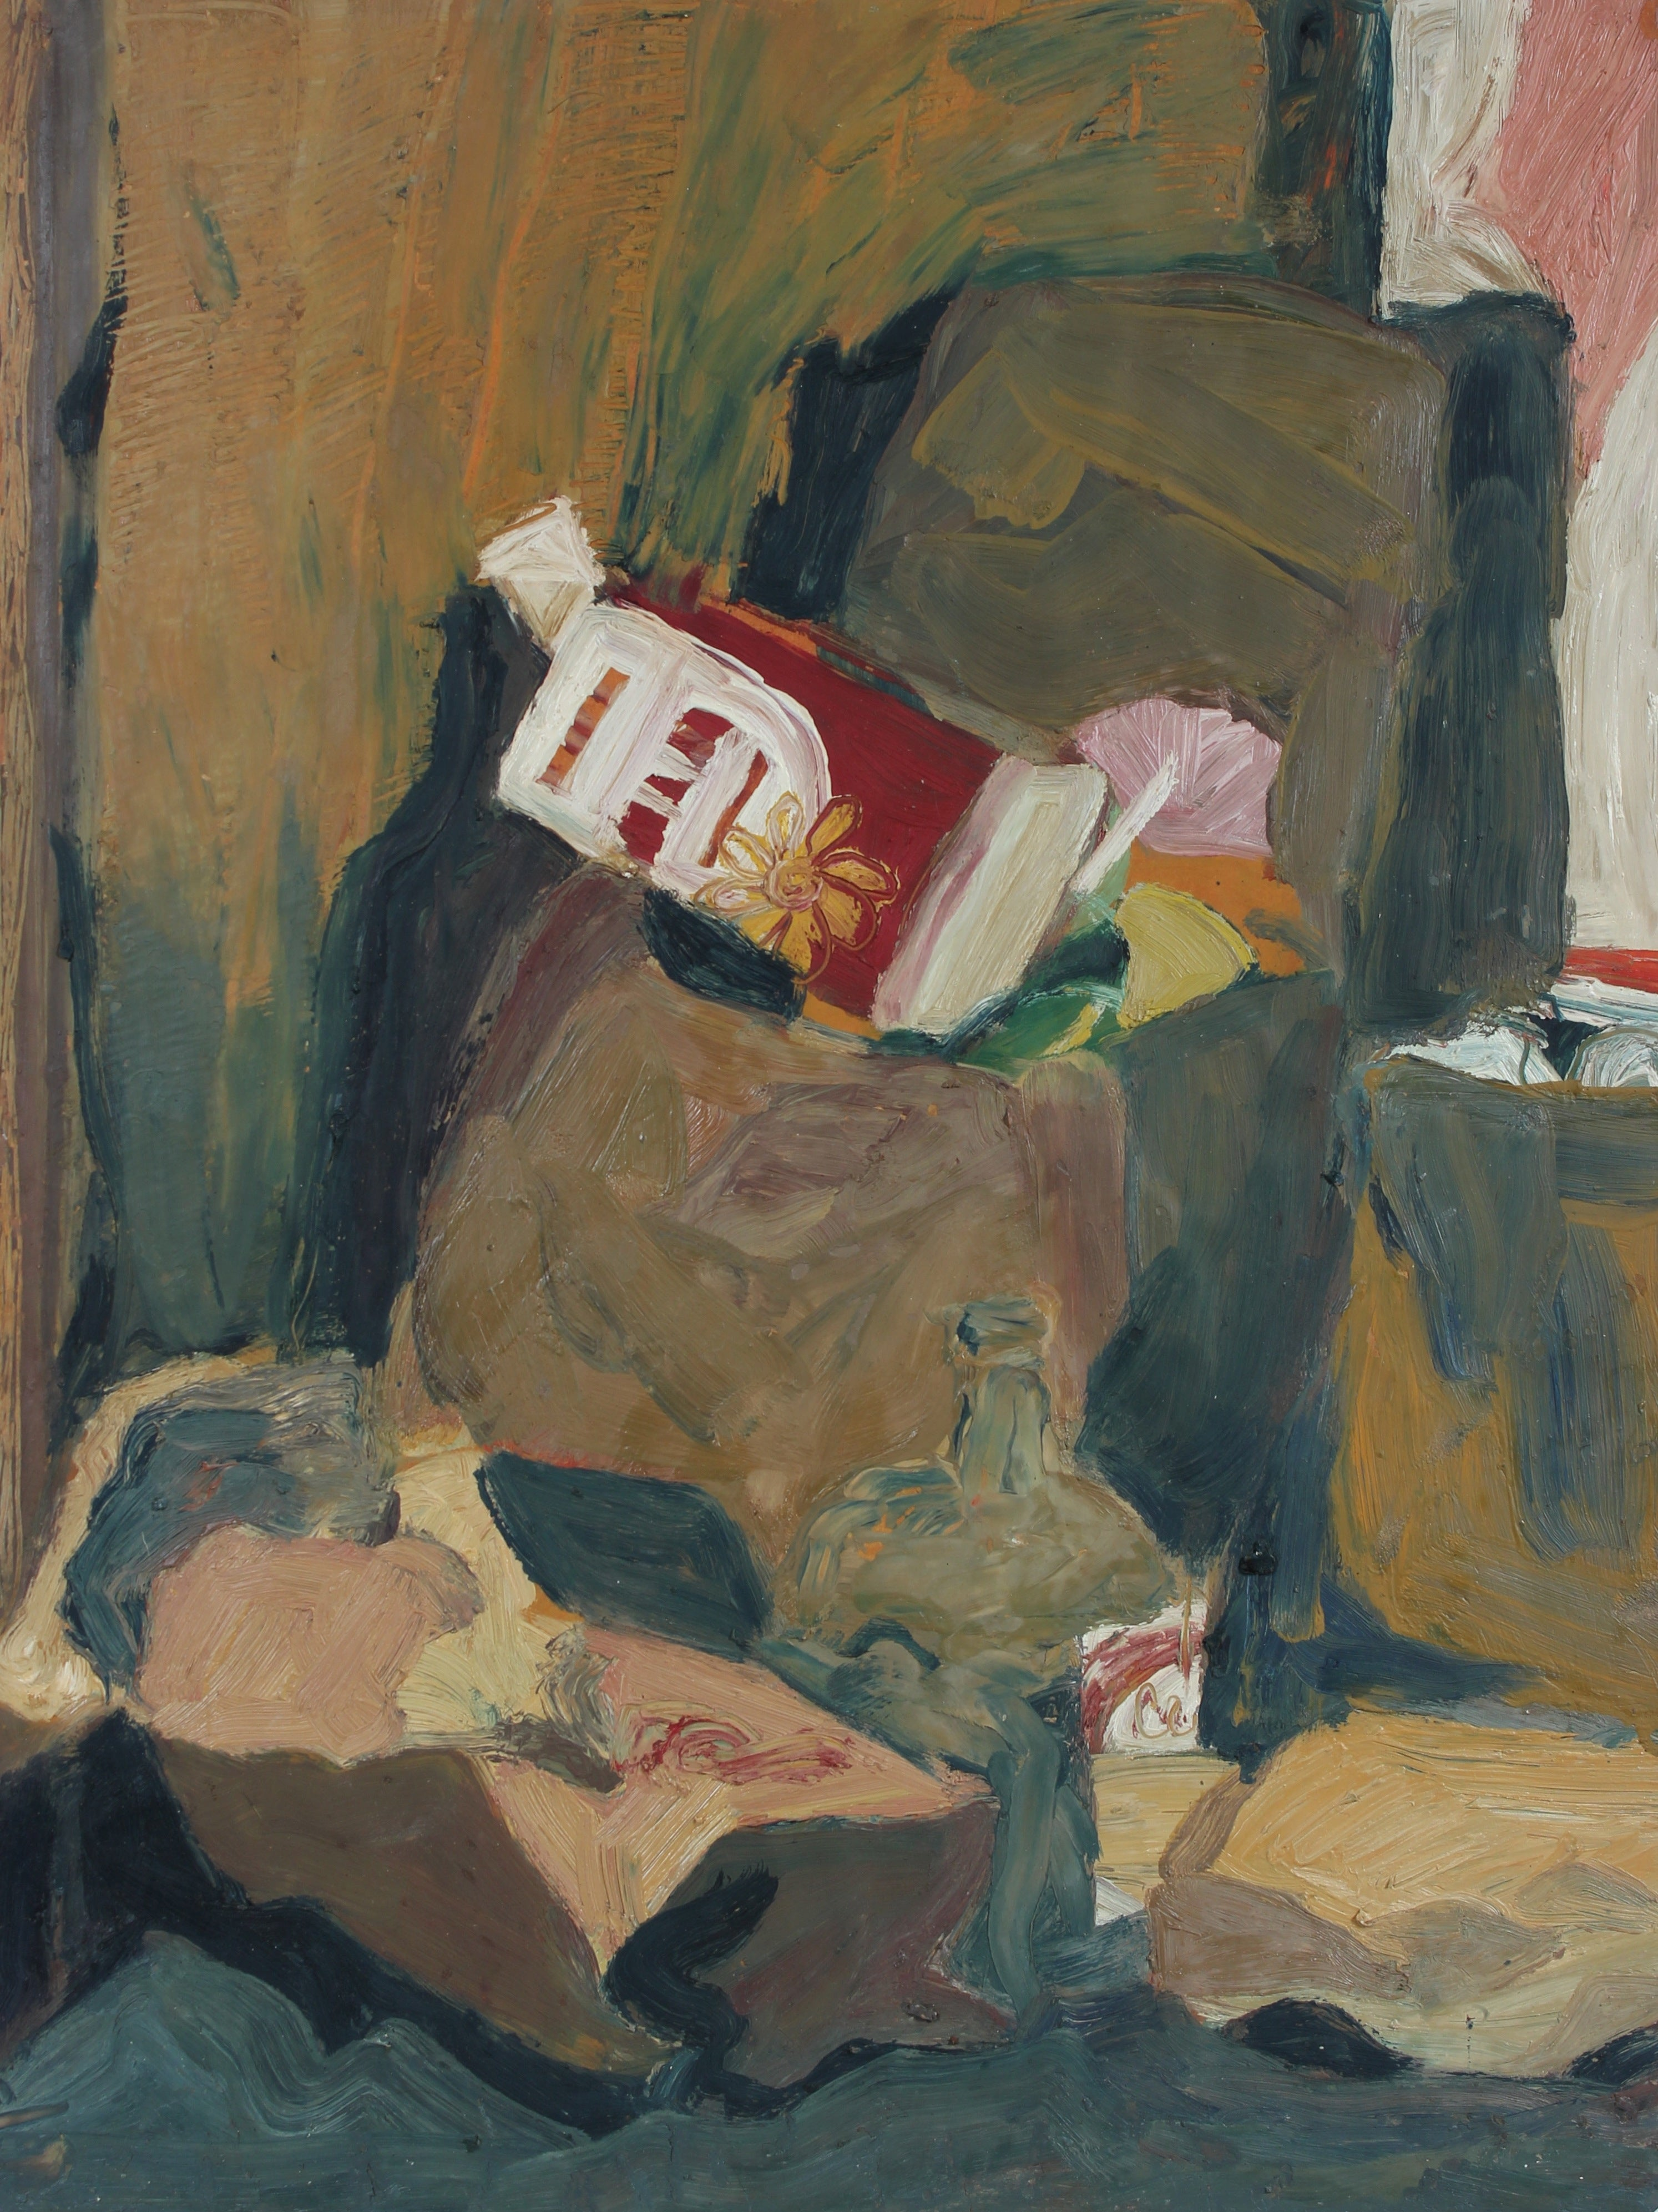 Muted Still Life in Oil Paint with Grocery Bags and Bottles, Circa 1960s